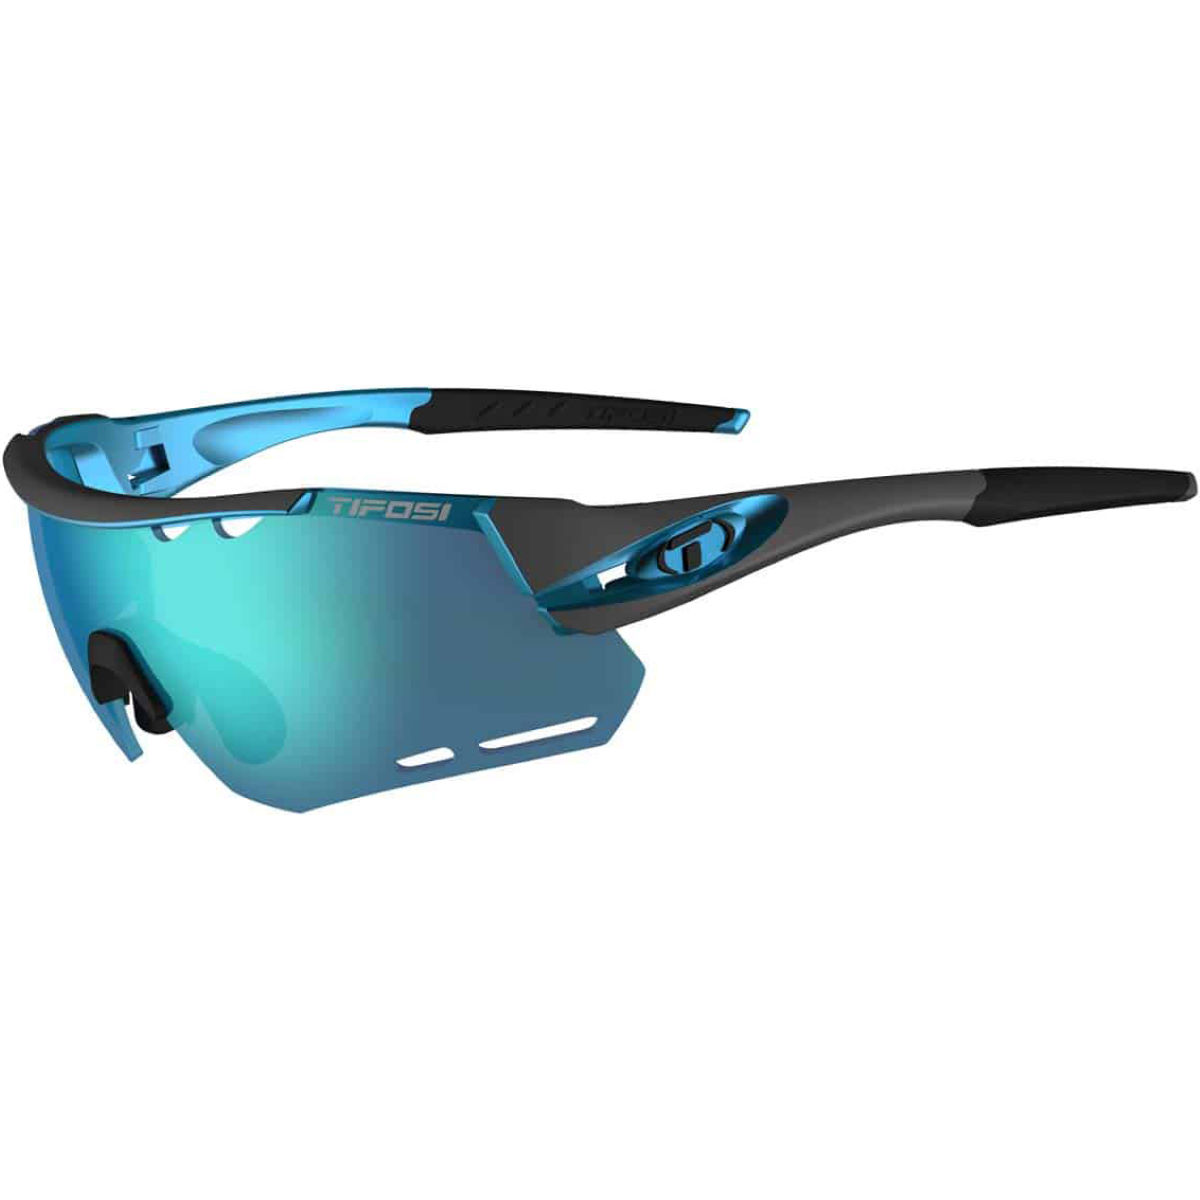 Tifosi Eyewear Alliant Gunmetal/Blue Clarion Interchangeable 2018 - Gafas de sol